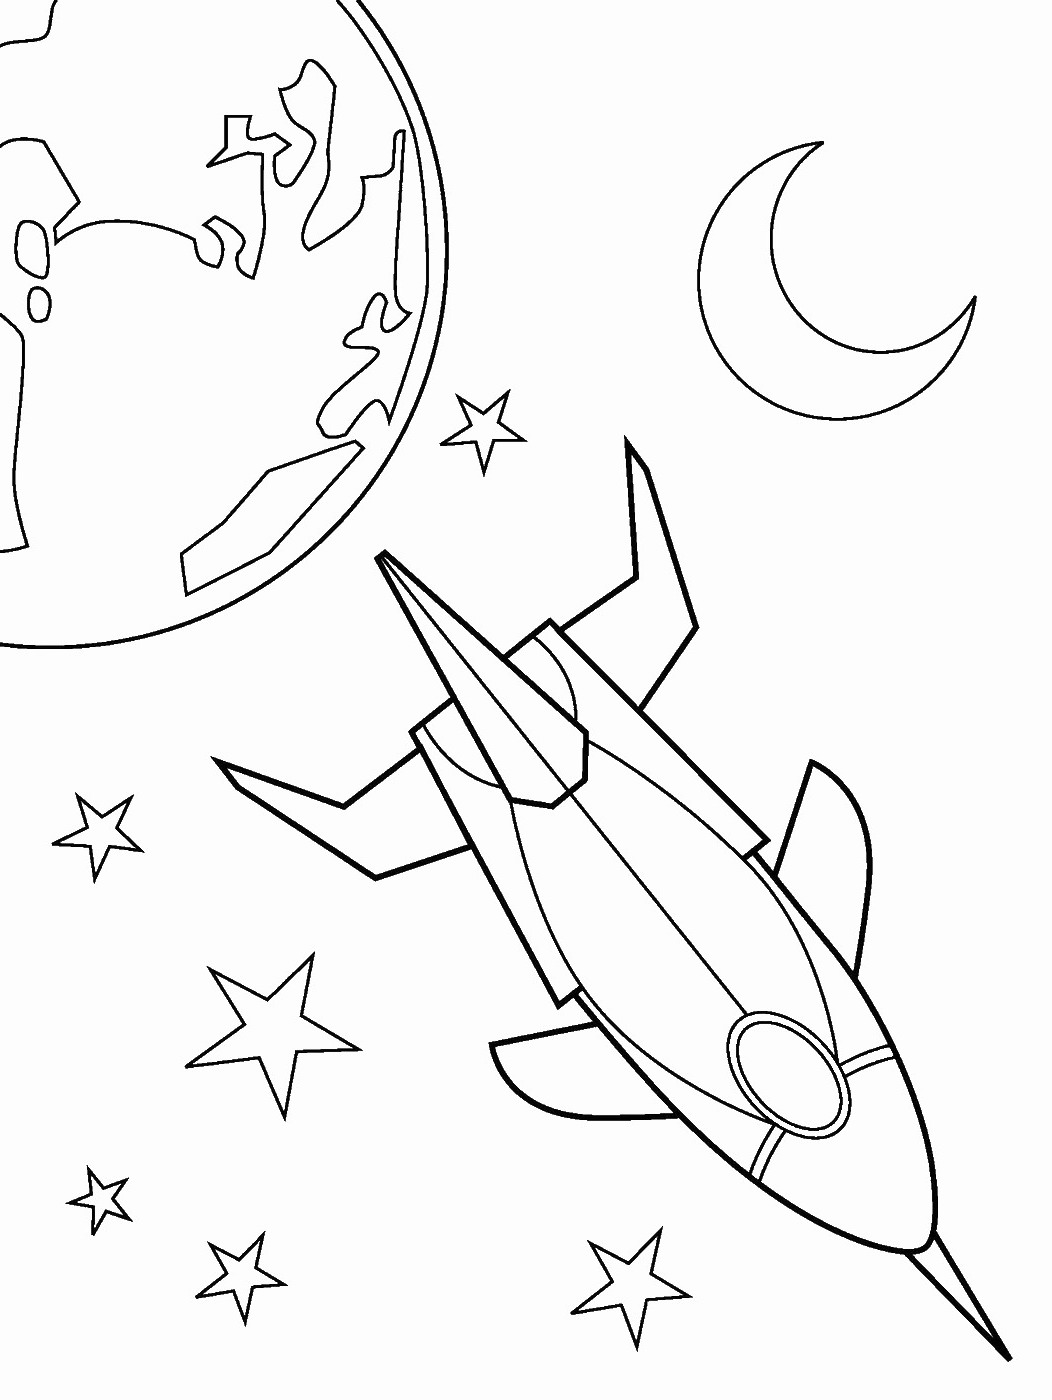 astronomy coloring pages get this space coloring pages adults printable gsa64 pages astronomy coloring